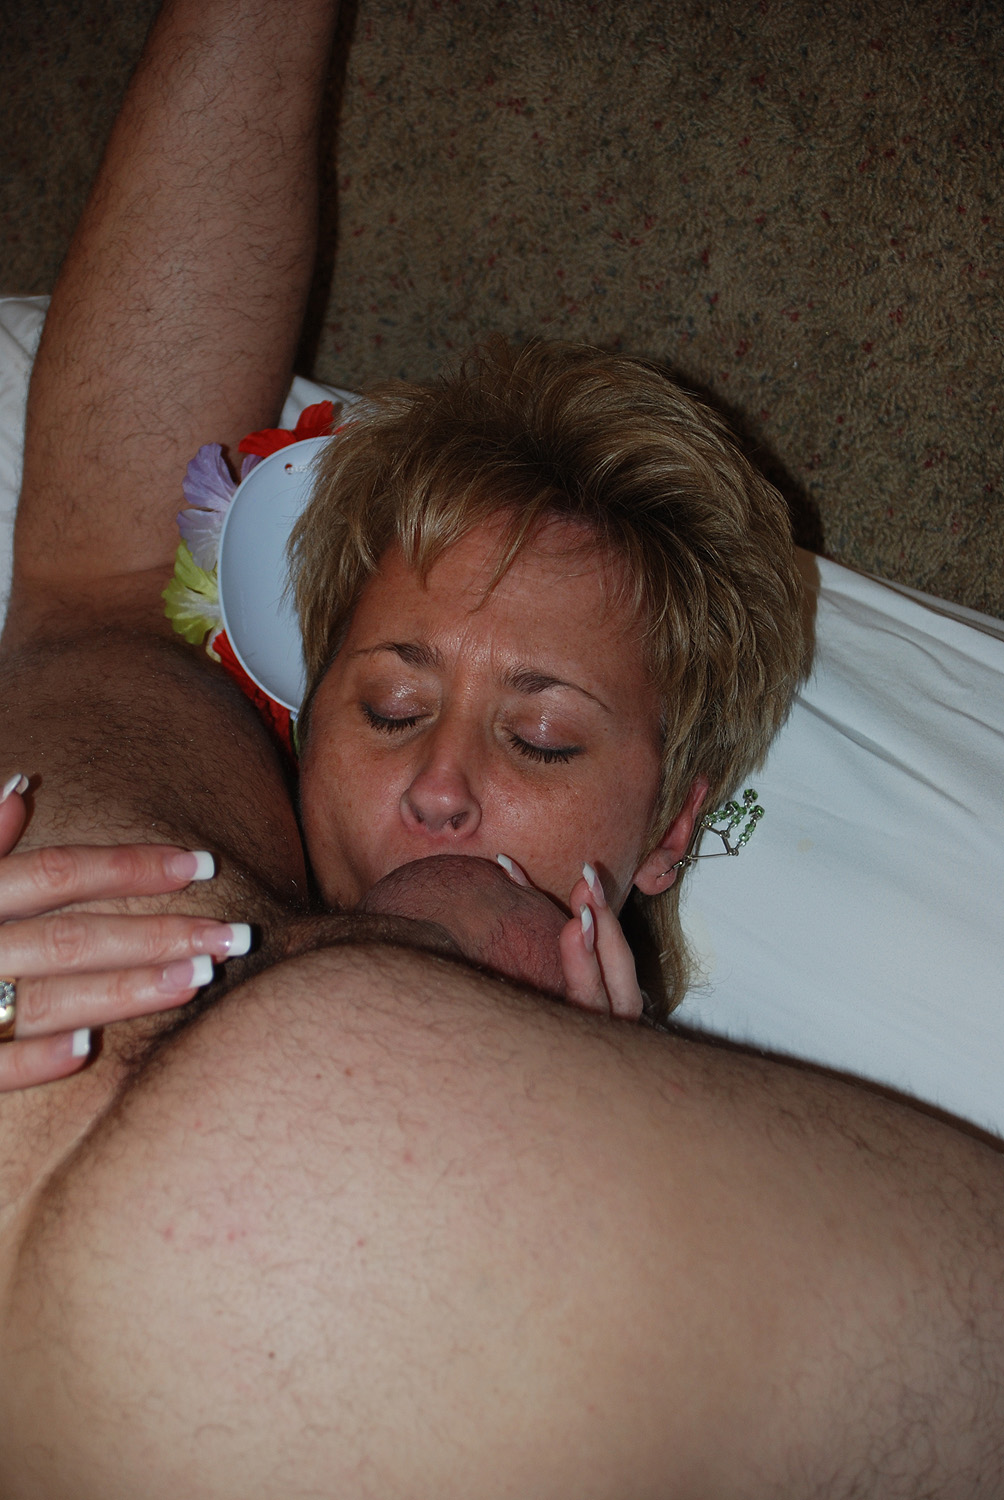 think, mofos anal virgin hd are absolutely